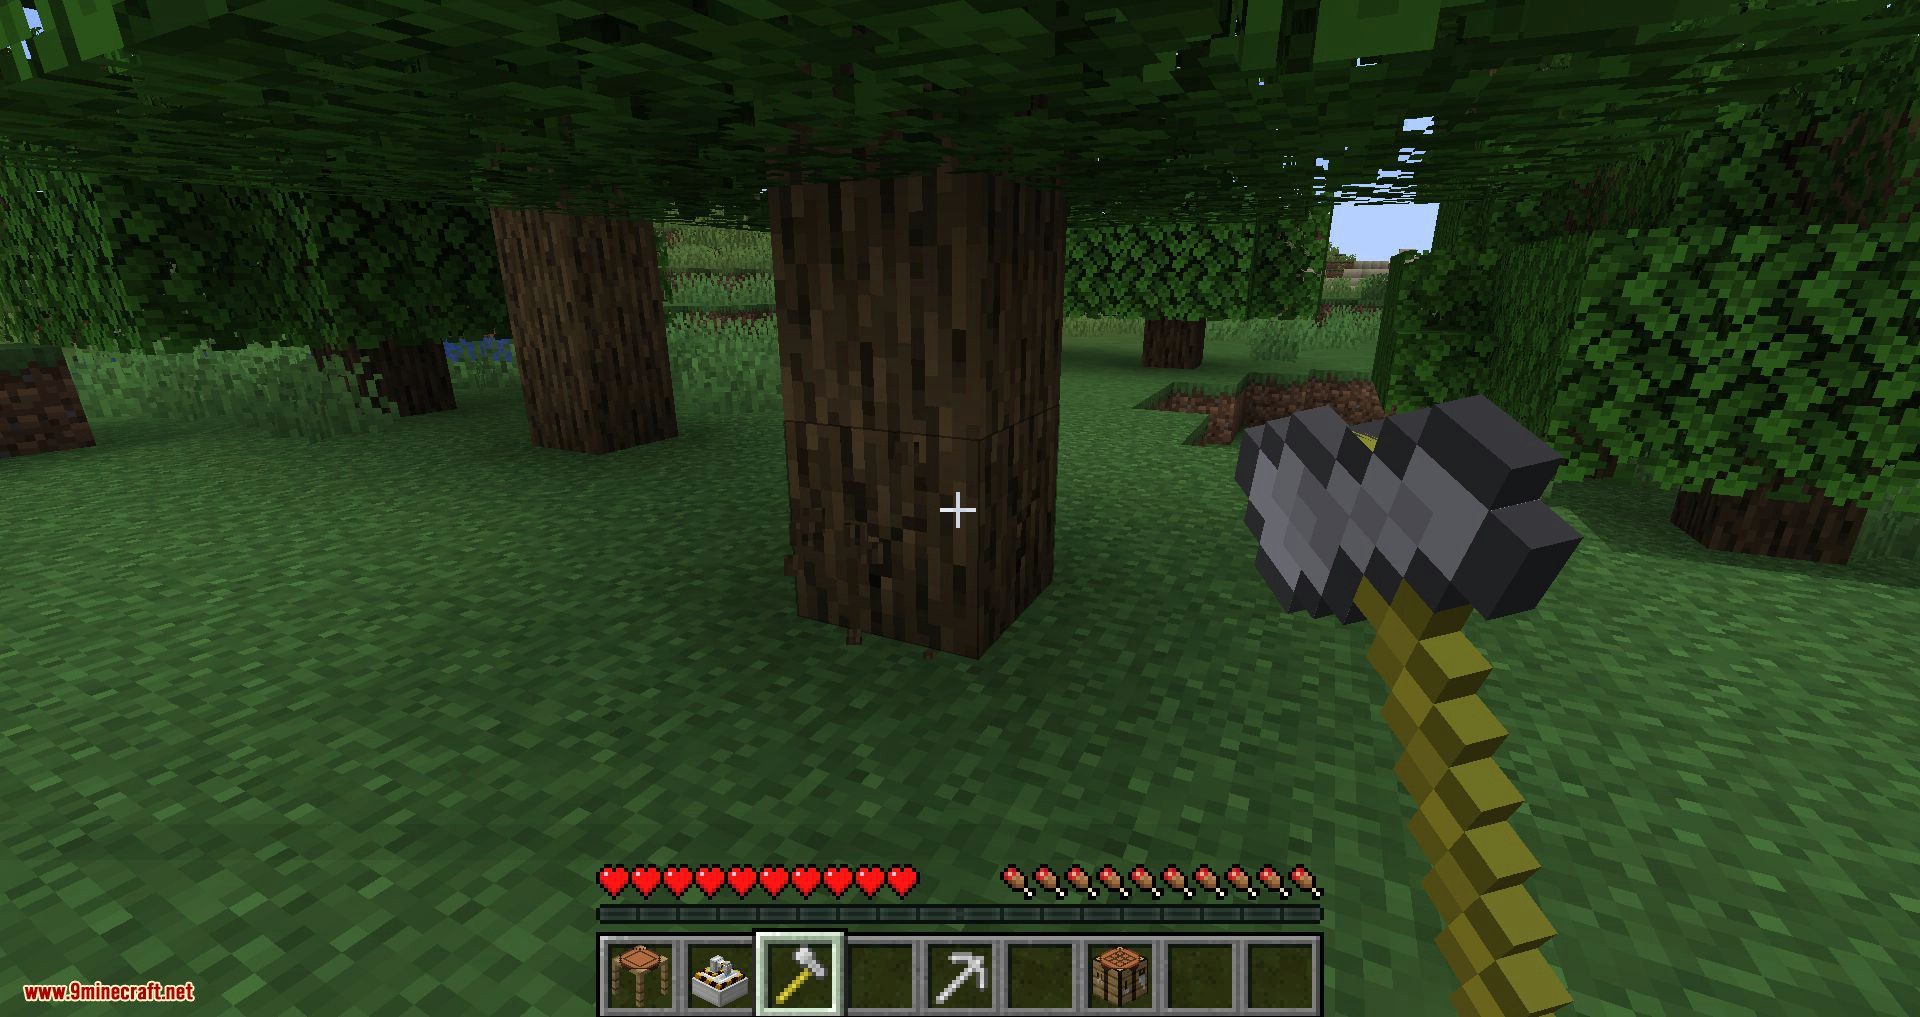 Materialisation mod for minecraft 09